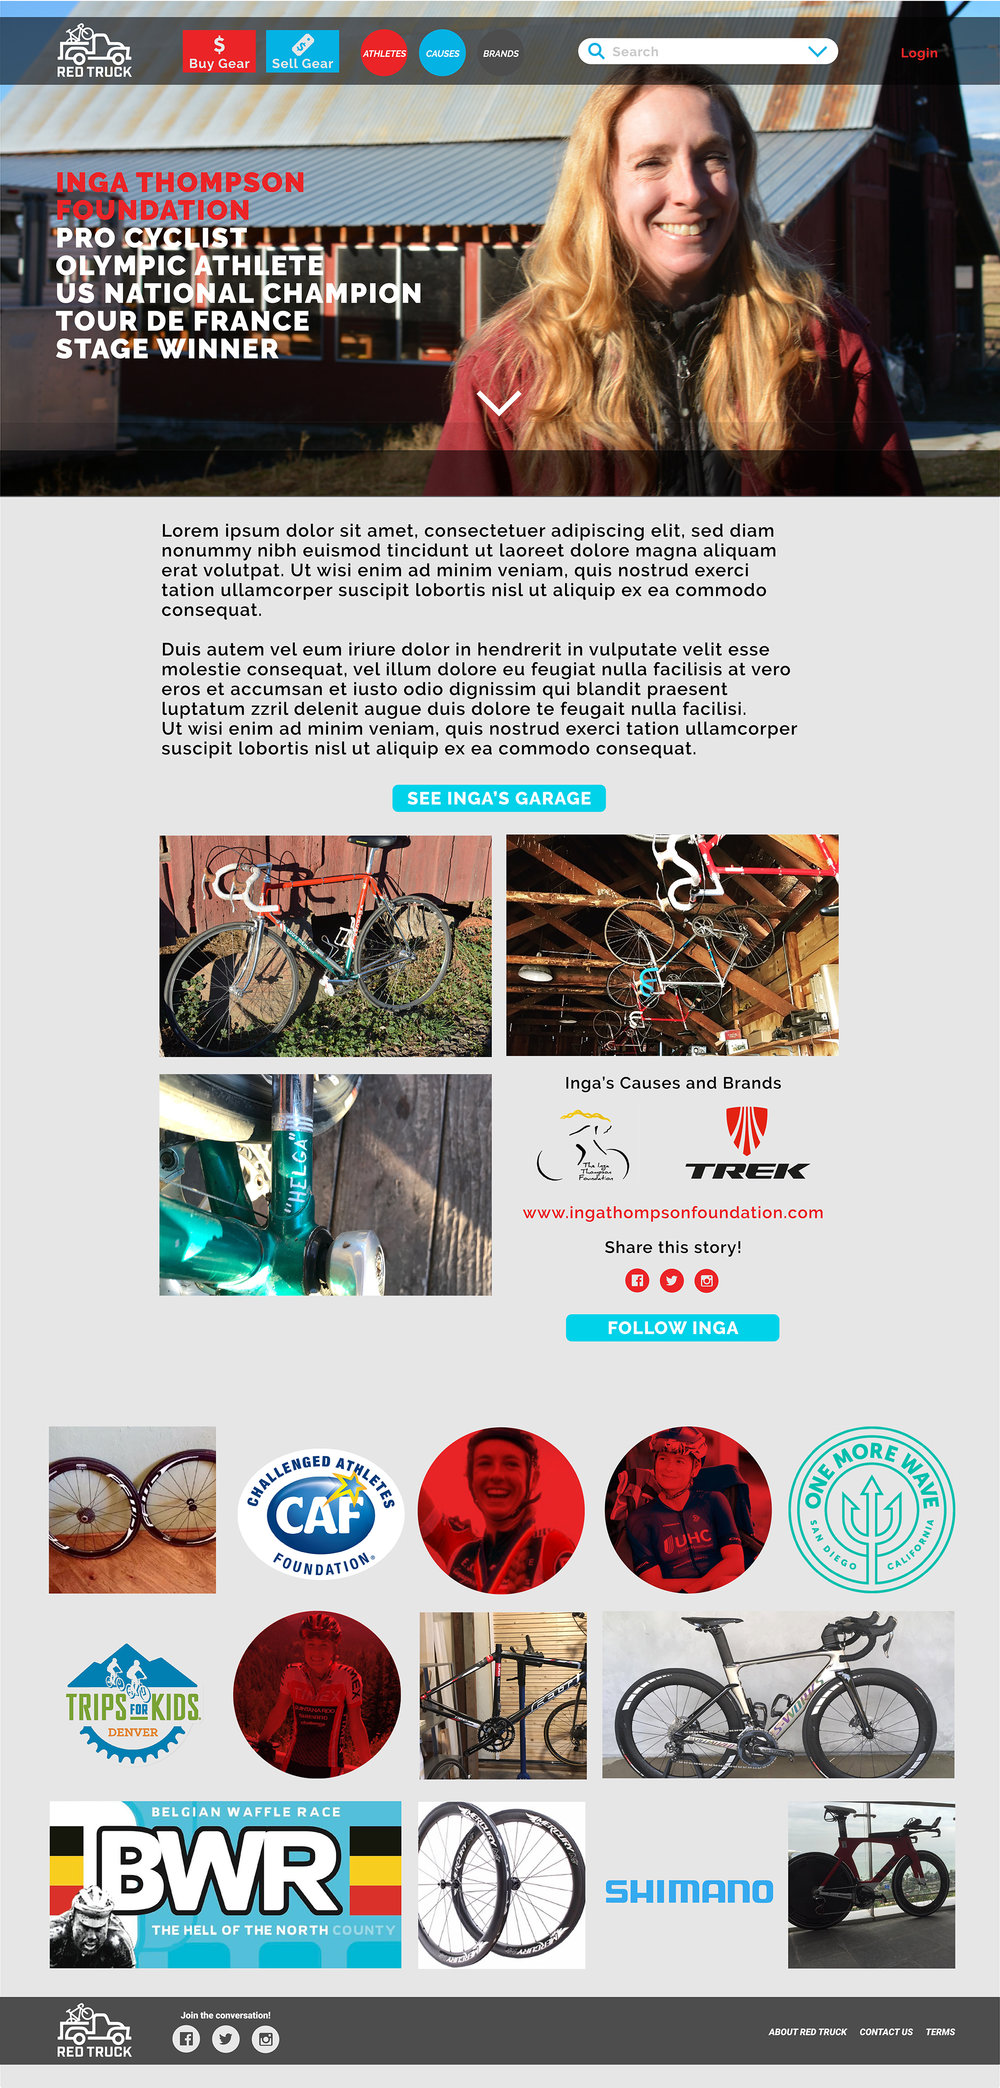 Red Truck-Website Redesign-Athlete.jpg